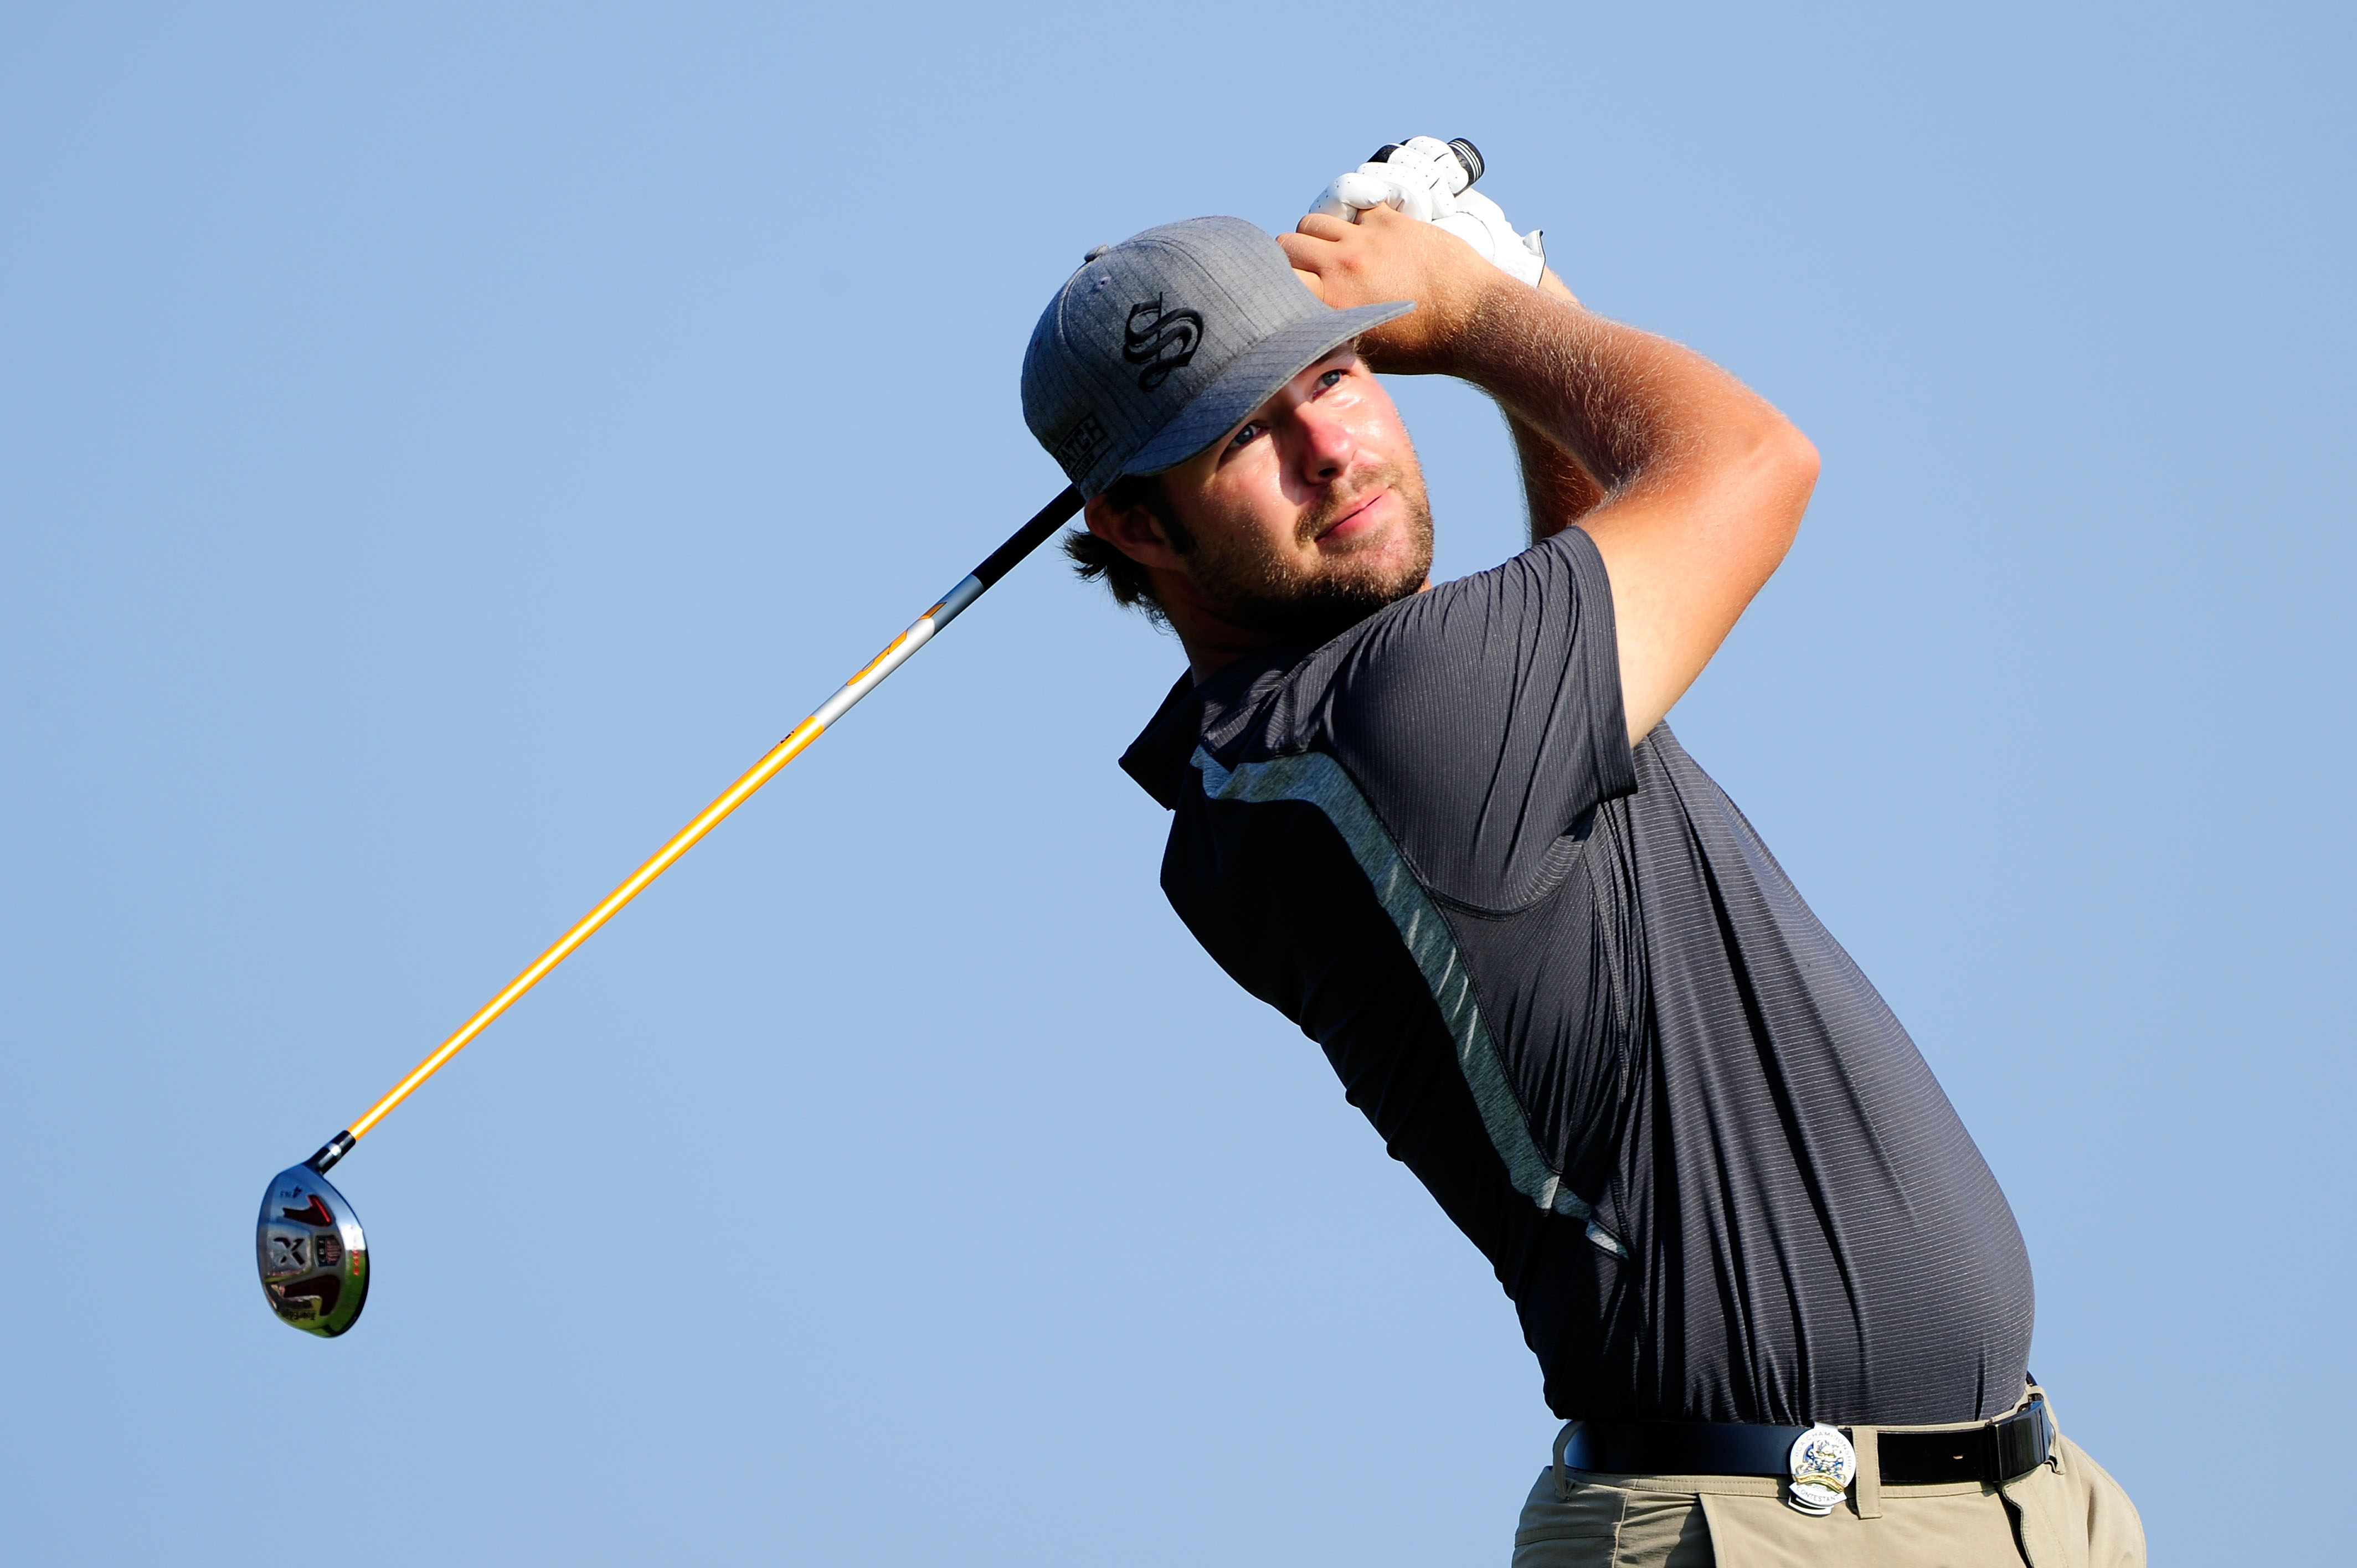 Ryan Moore looks to repeat and earn his second victory at the Wyndham Championship.